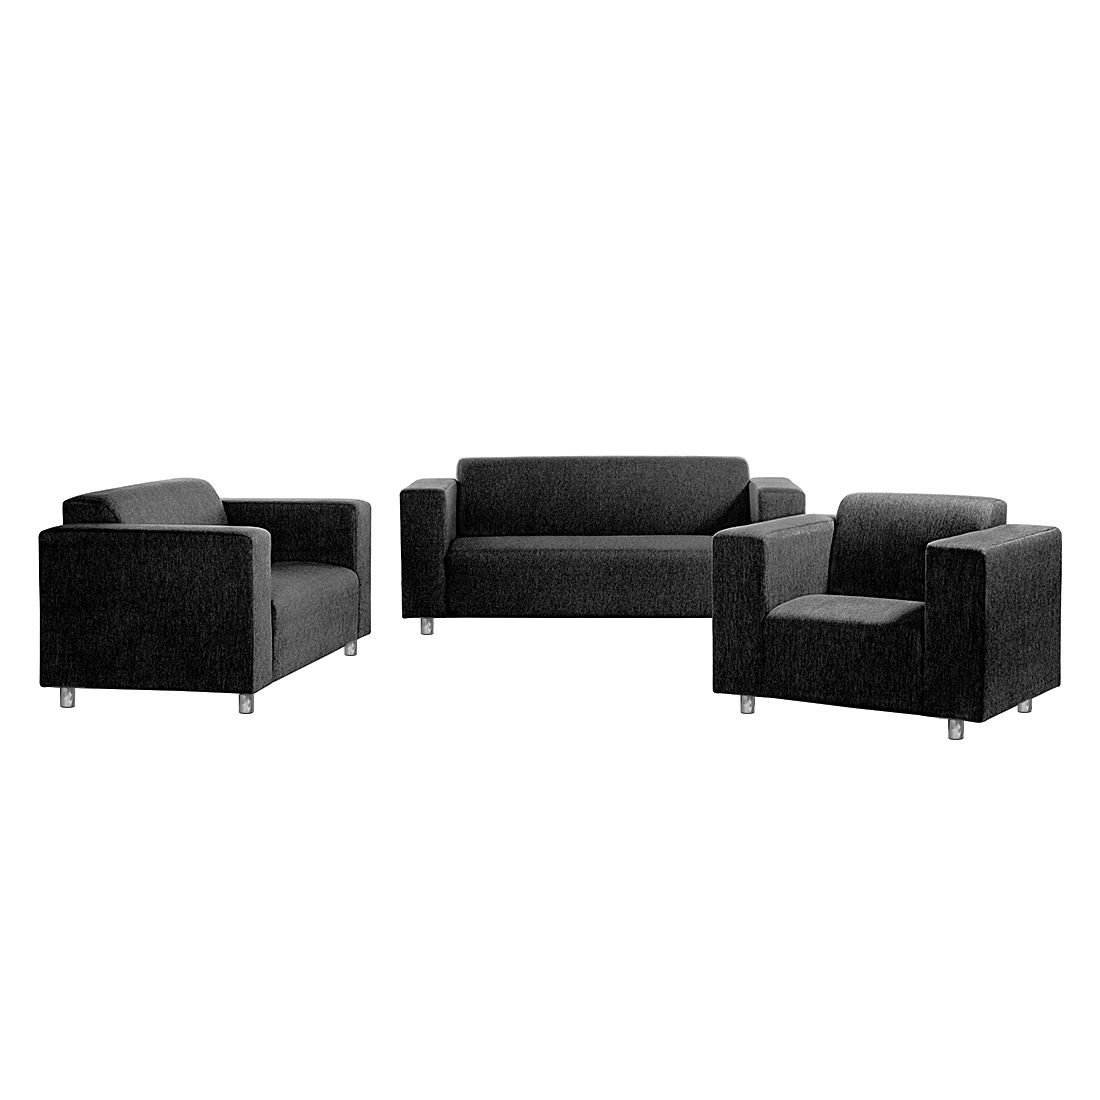 polstergarnitur oslo 3 2 1 strukturstoff anthrazit roomscape g nstig kaufen. Black Bedroom Furniture Sets. Home Design Ideas